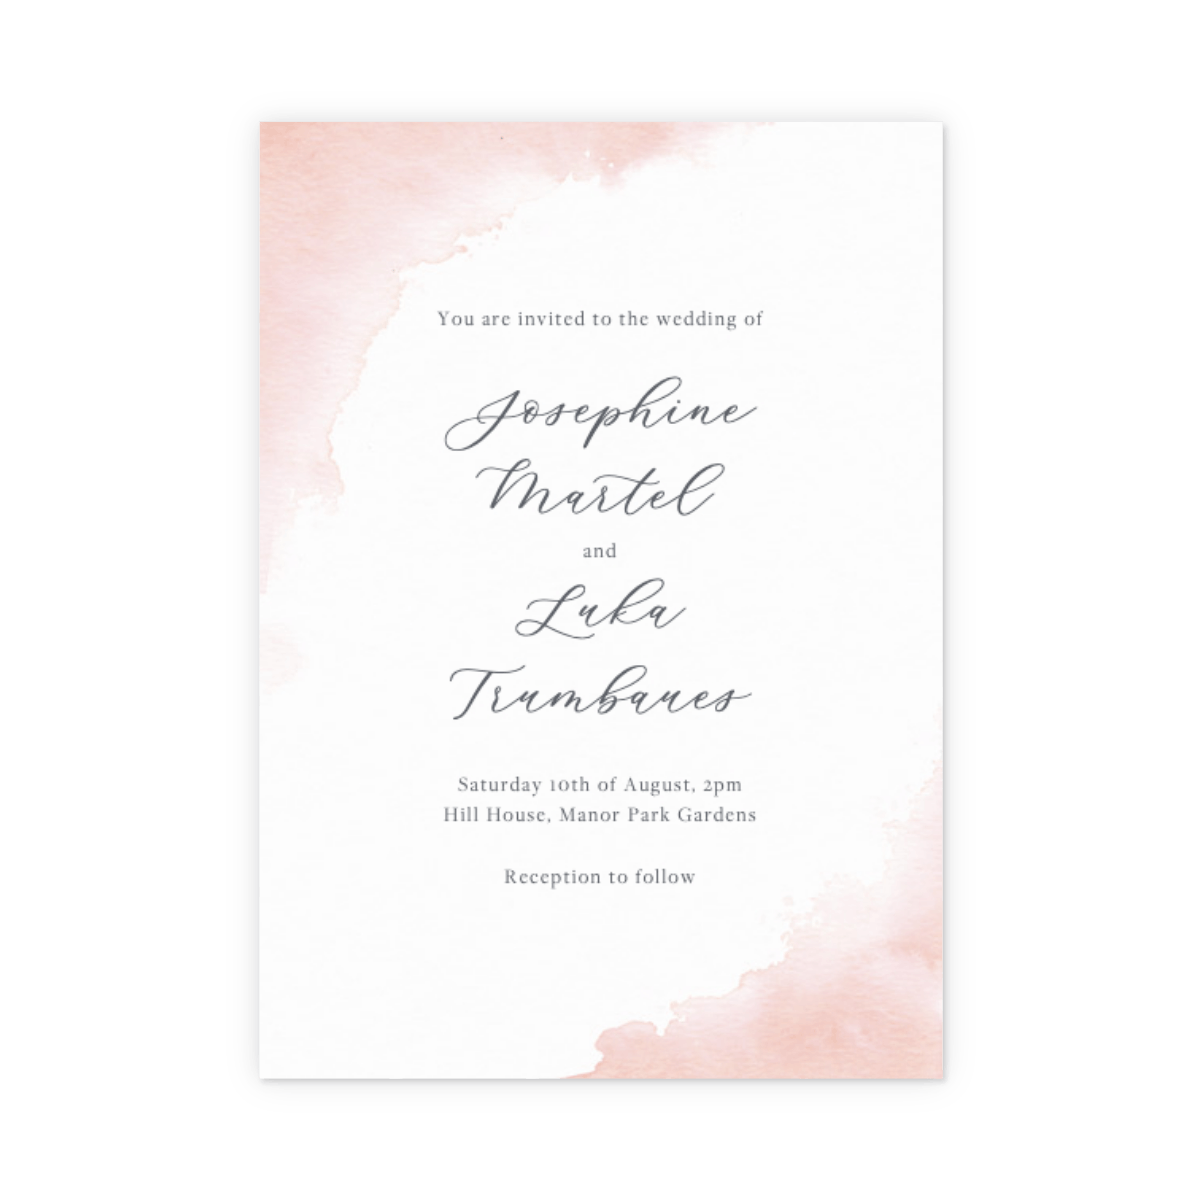 Https%3a%2f%2fwww.papier.com%2fproduct image%2f96165%2f4%2fwatercolour blush 24115 front 1578343547.png?ixlib=rb 1.1